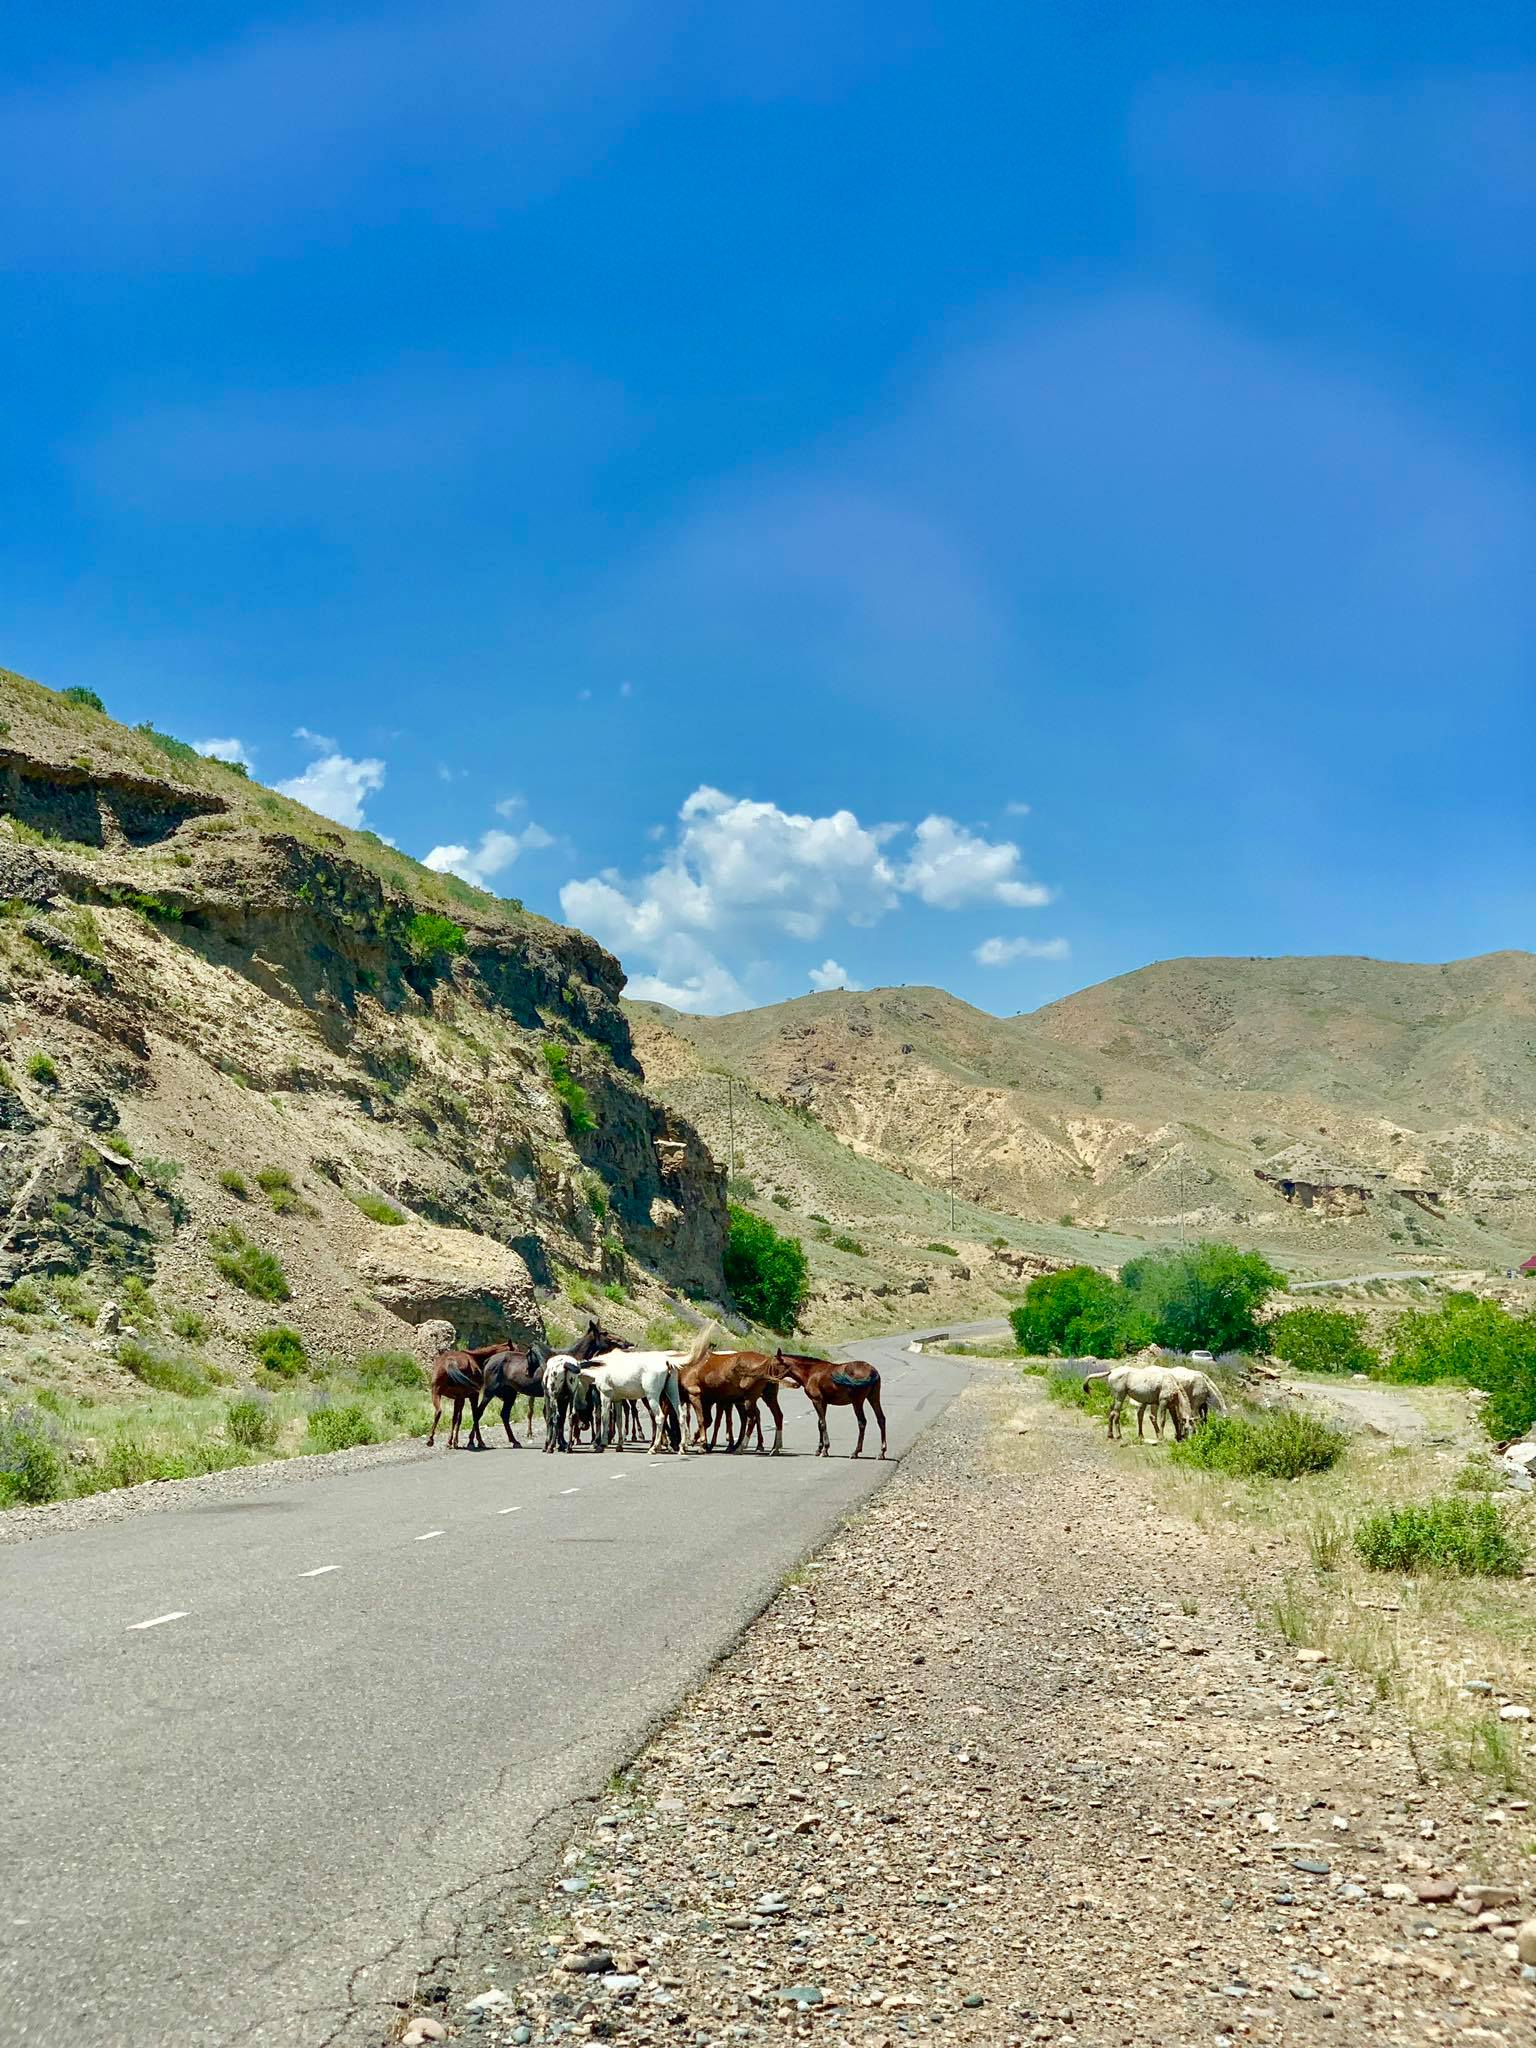 Kach Solo Travels in 2019 Roadtrip to Sary Chelek Lake which is 330 km. from Osh, Kyrgyzstan13.jpg